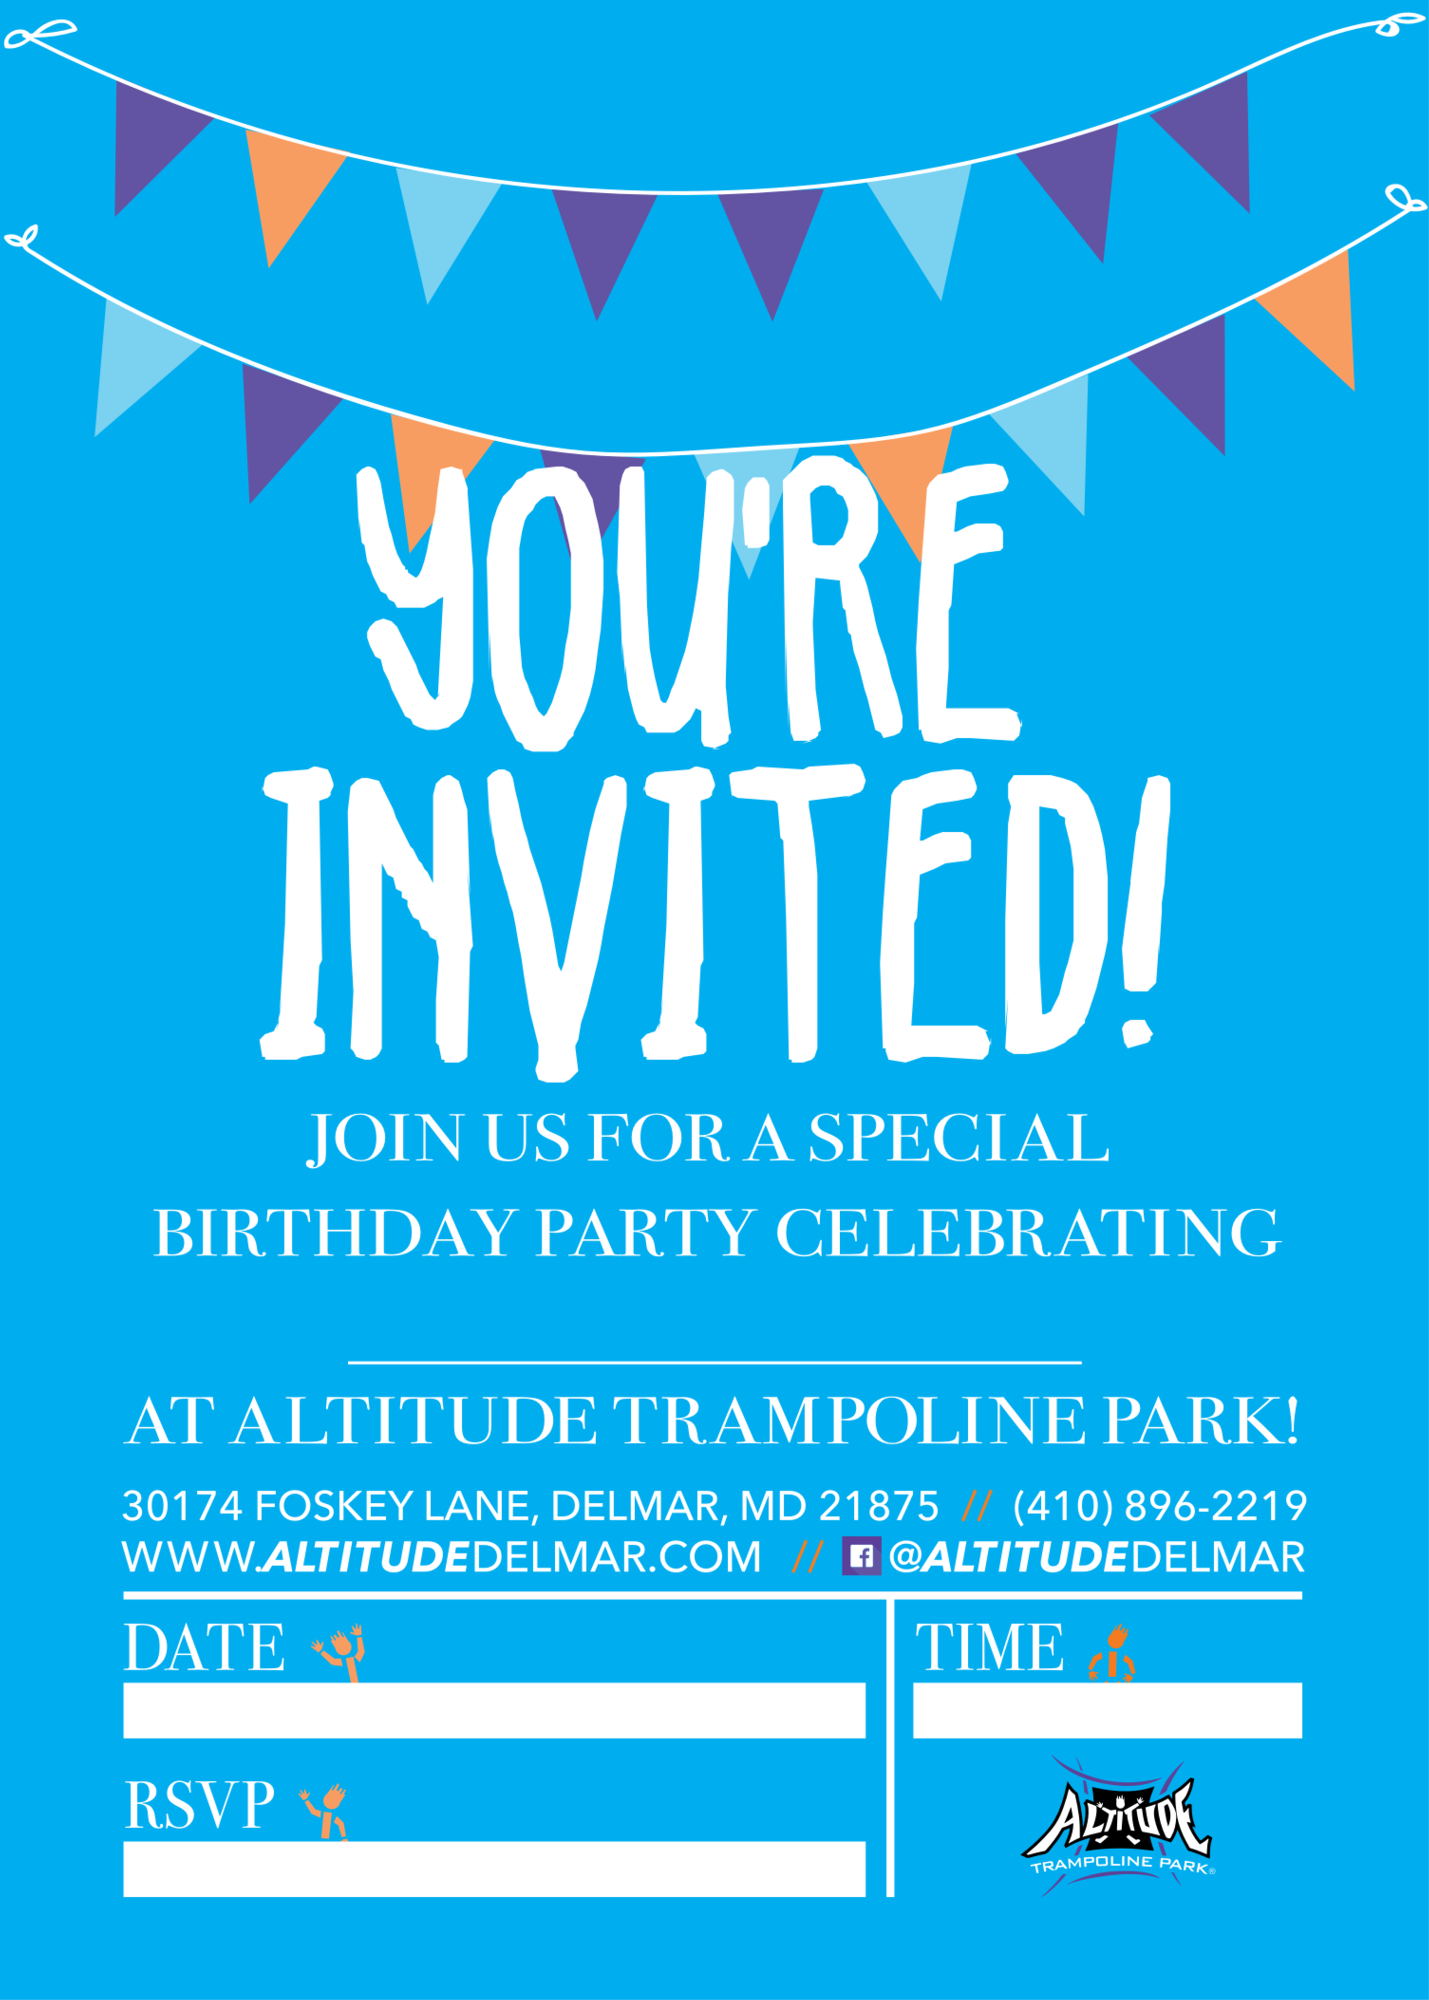 Download A Printable Invitation For Your Birthday Party Attendees